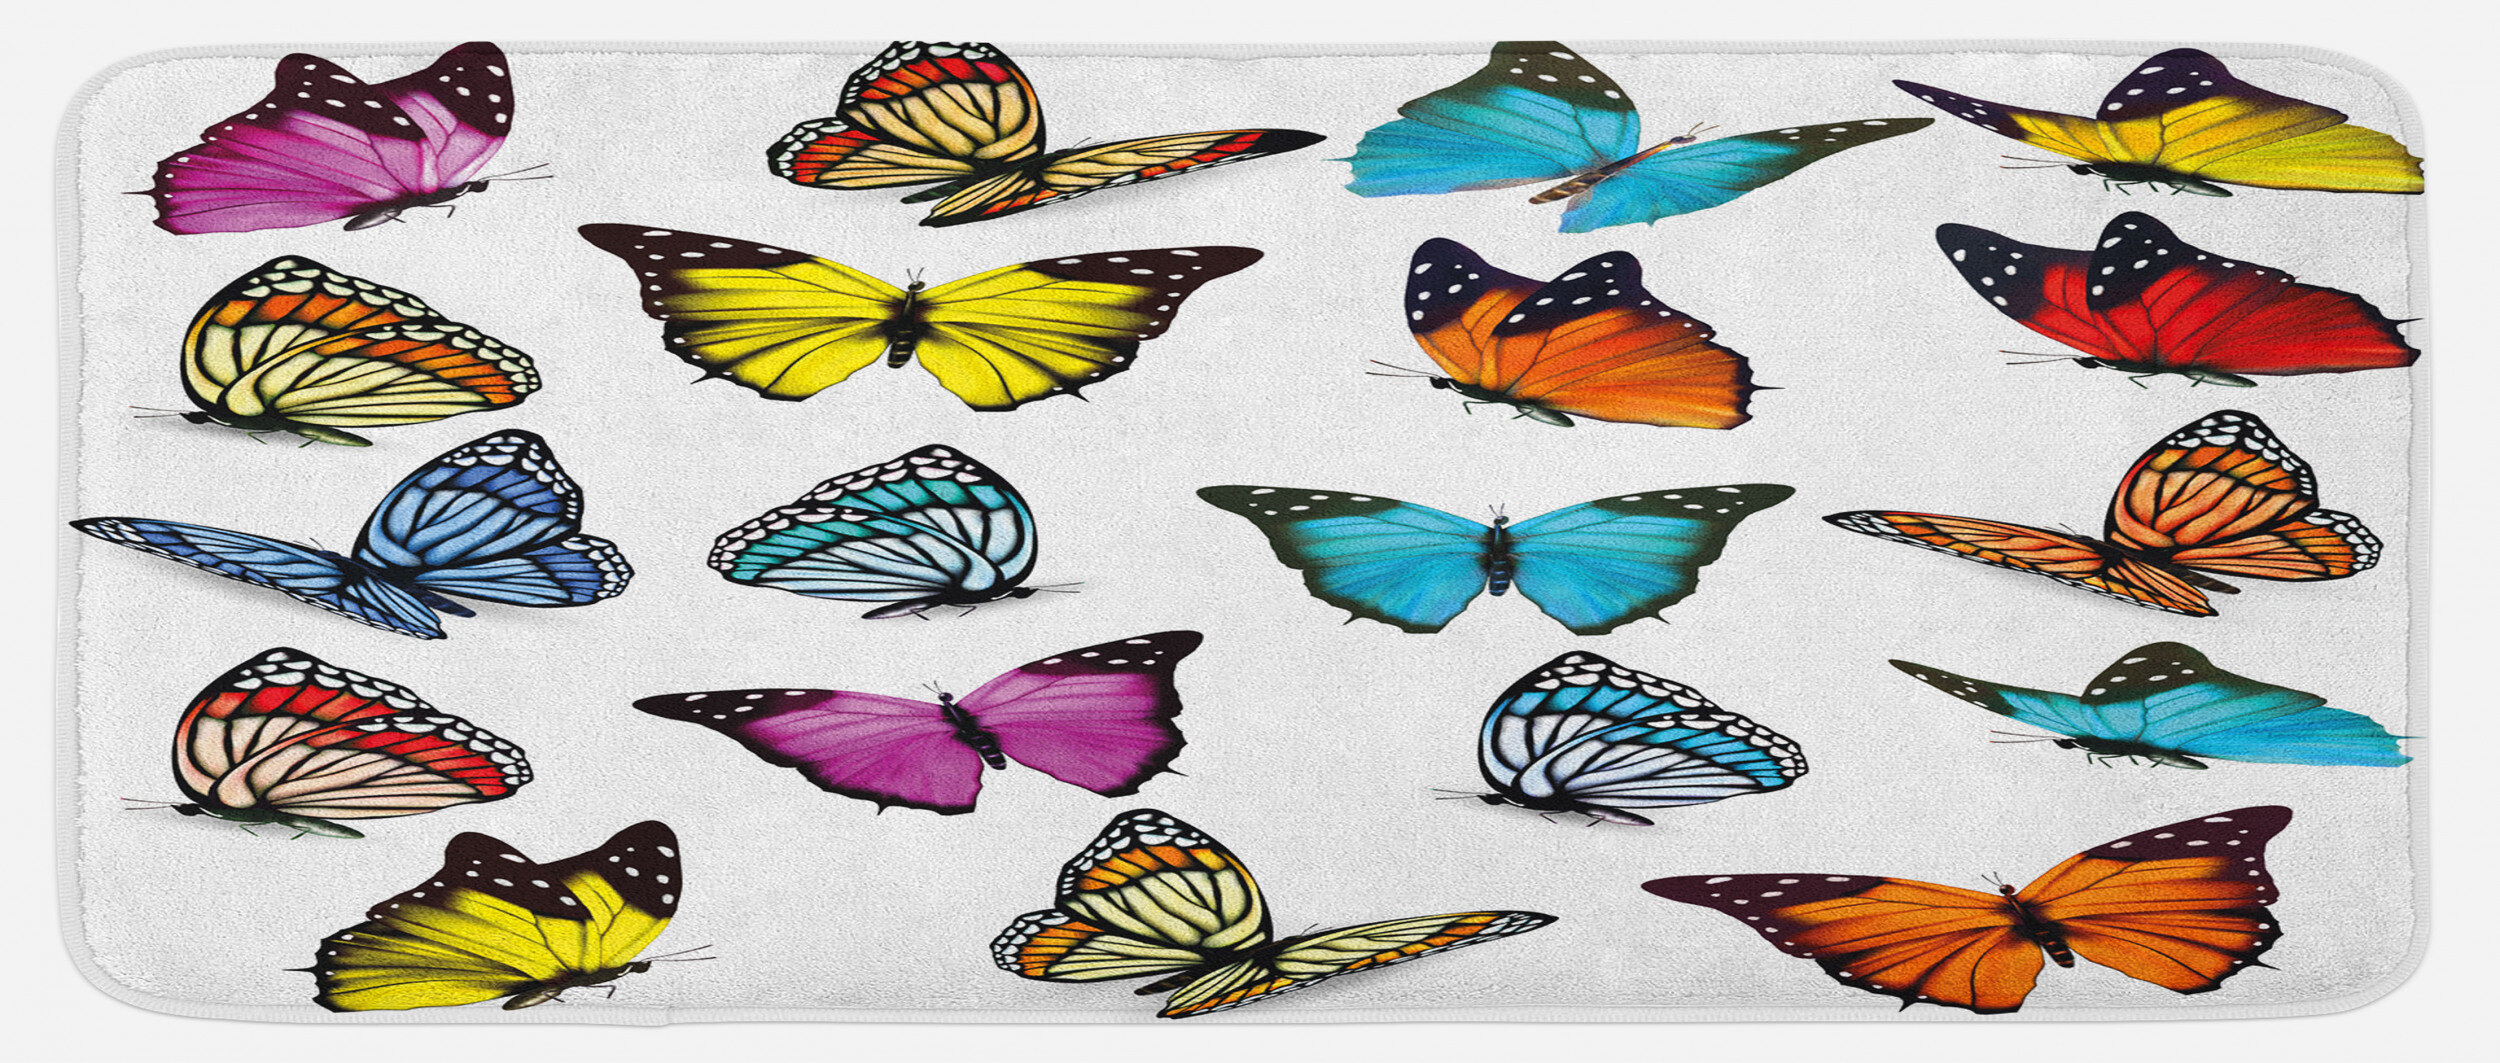 East Urban Home Colorful Butterflies Flying Composition Summertime